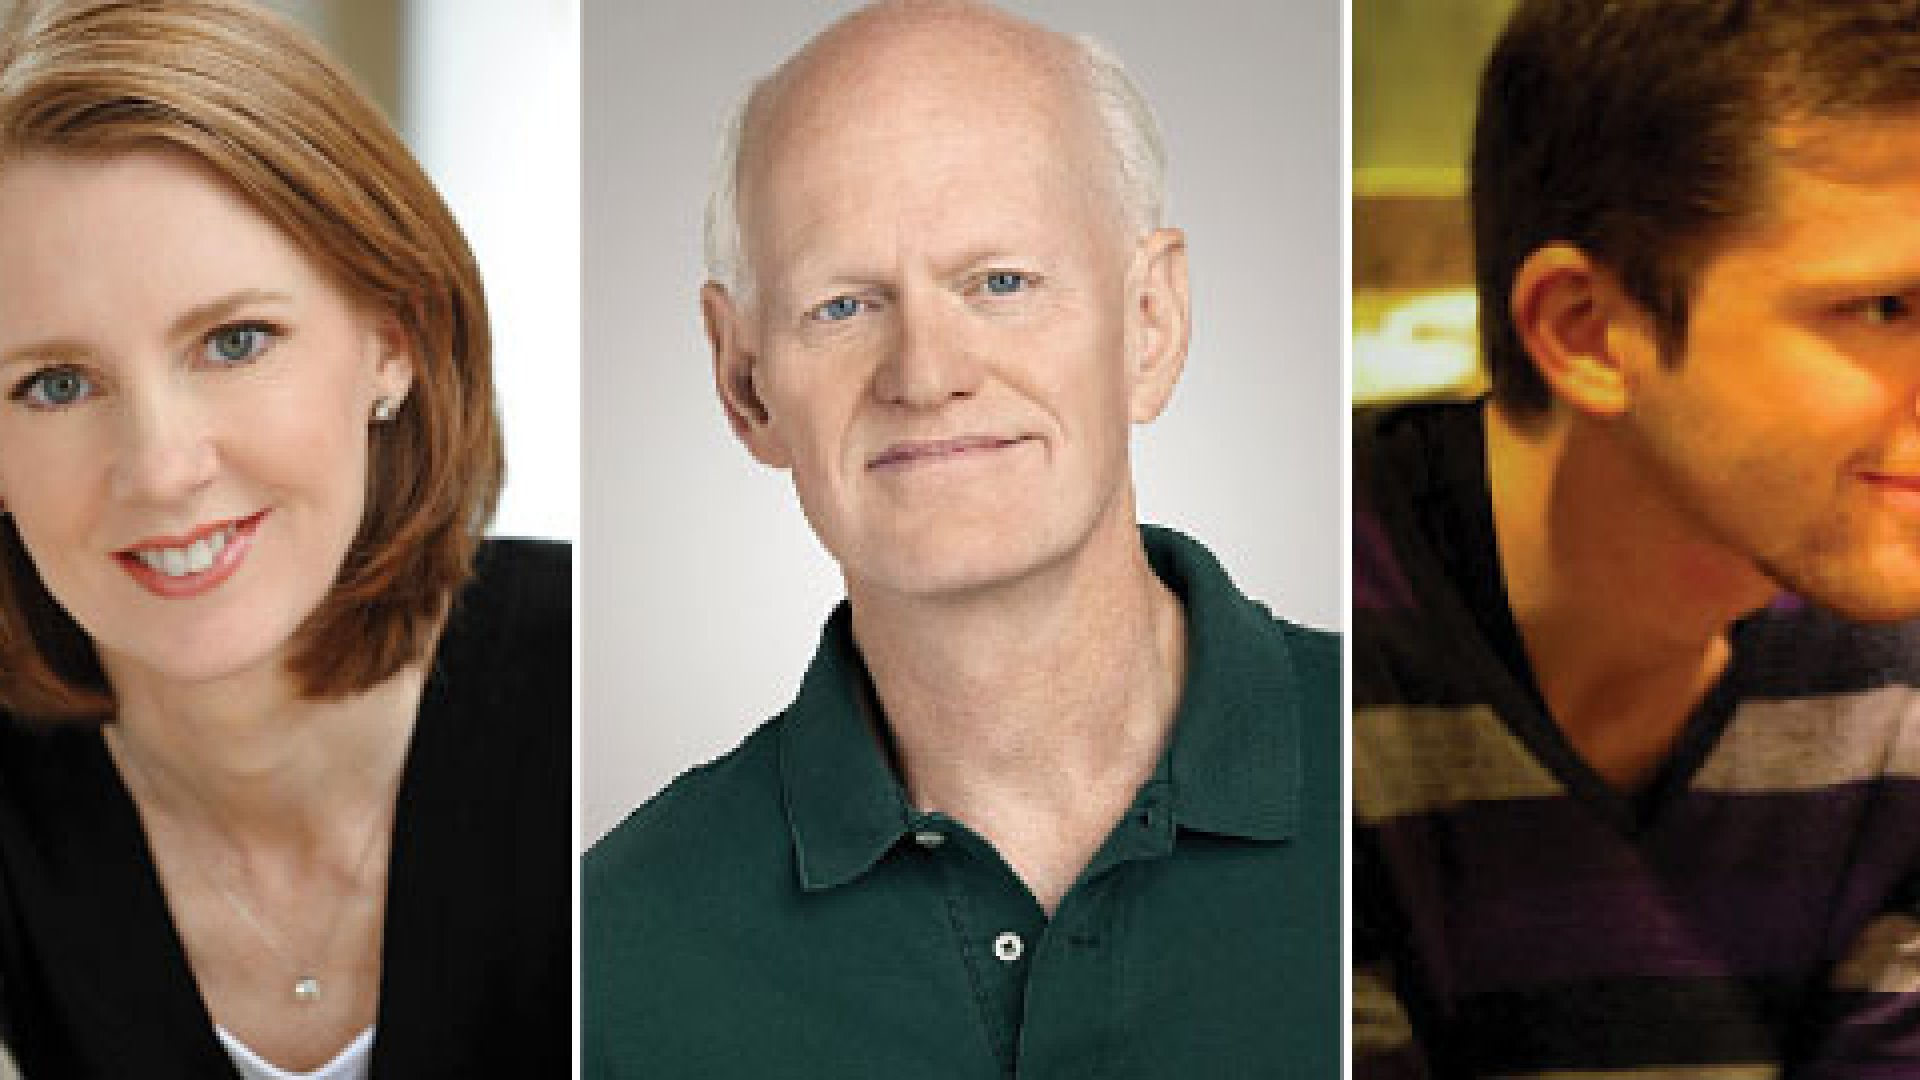 From Left: Gretchen Rubin, Marshall Goldsmith, and Chris Guillebeau